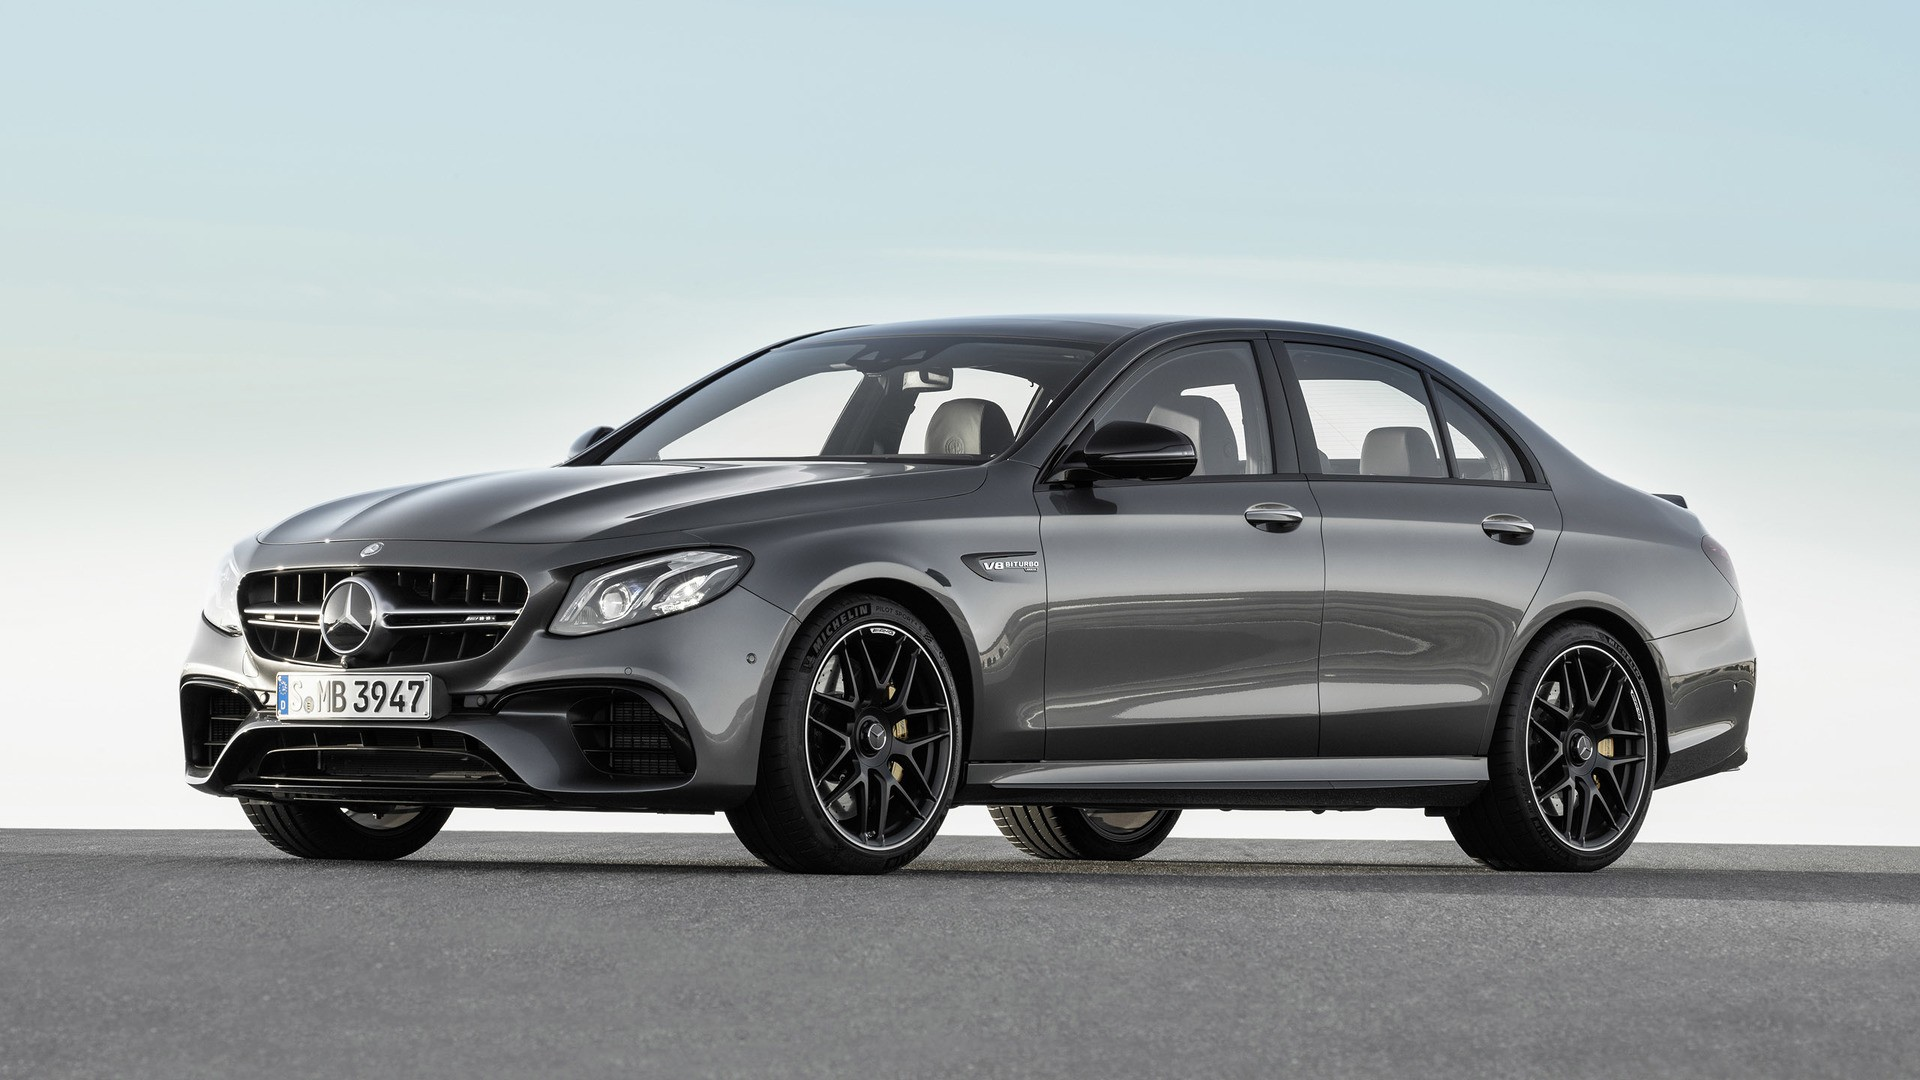 Mercedes benz uk prices e63 4matic sedan from gbp 78 935 for How much mercedes benz cost